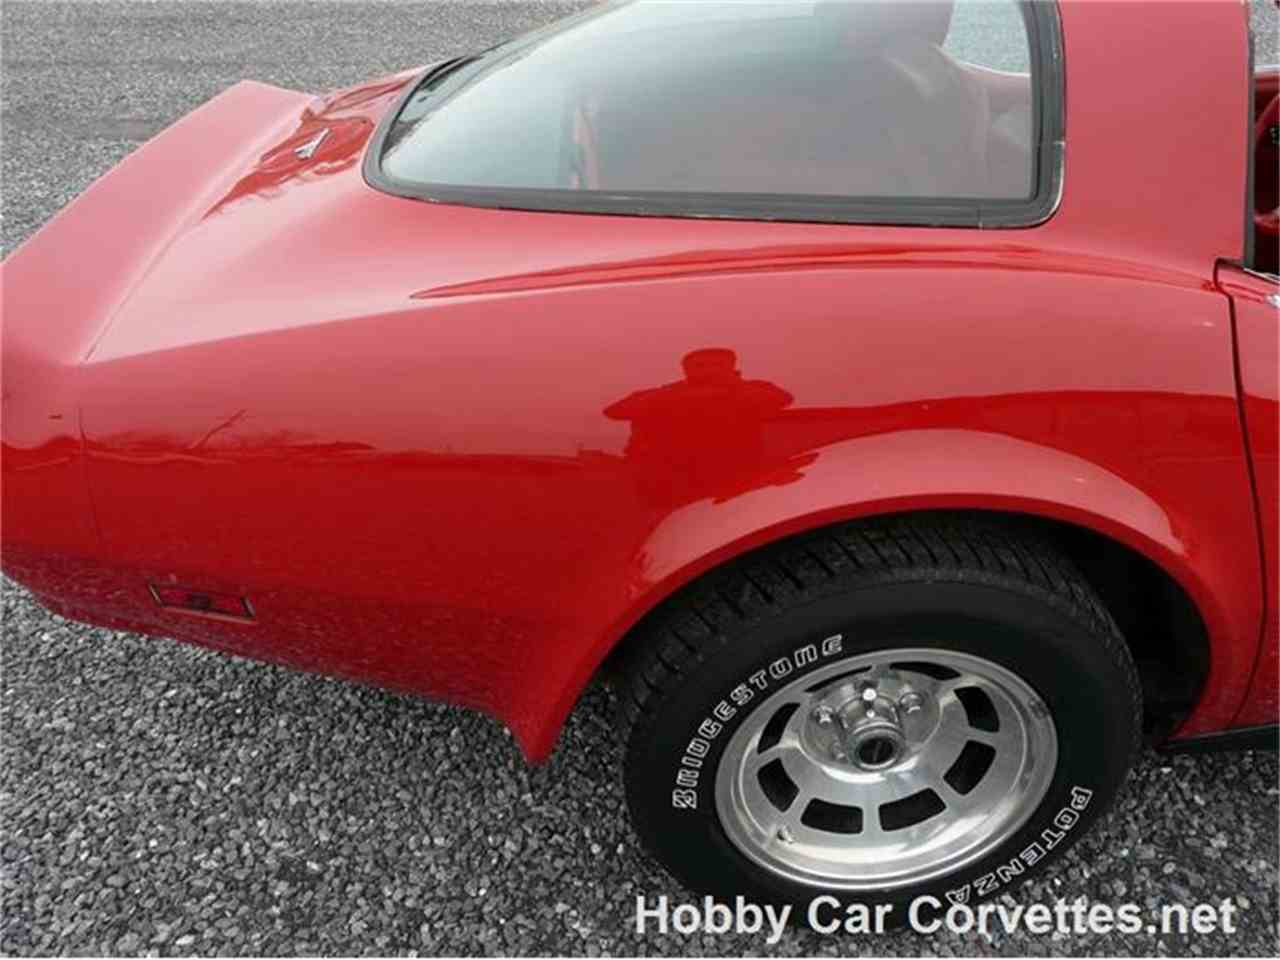 Large Picture of '81 Chevrolet Corvette located in Pennsylvania - $17,999.00 Offered by Hobby Car Corvettes - DVCX